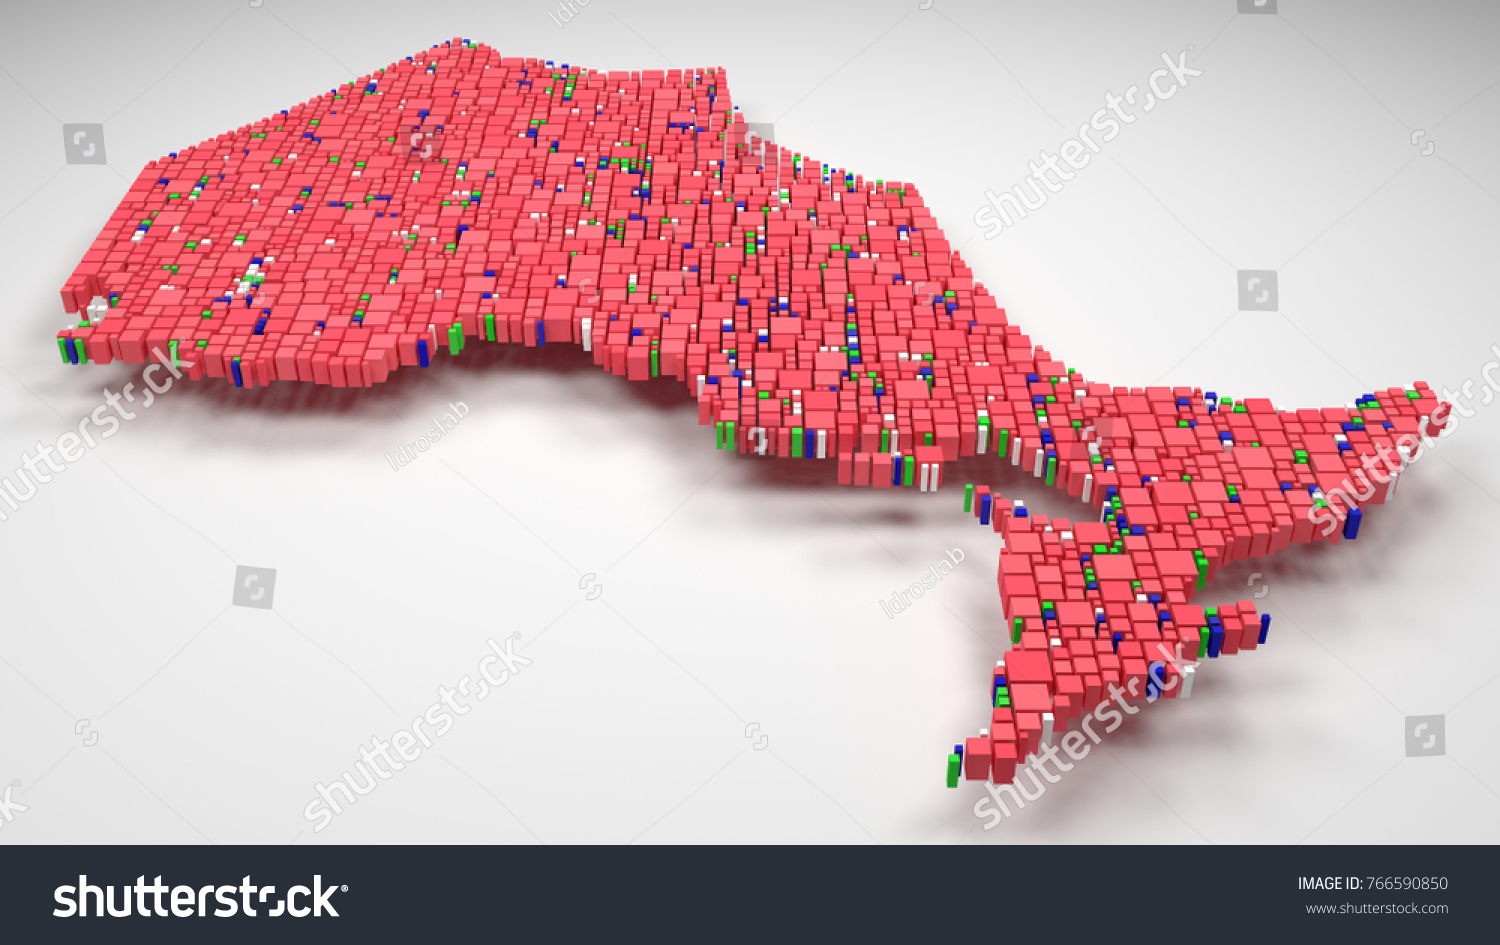 Decorative Map Ontario Canada 3 D Illustration Stock Illustration     Decorative Map of Ontario   Canada   3D illustration rain of little bricks    Flag colors